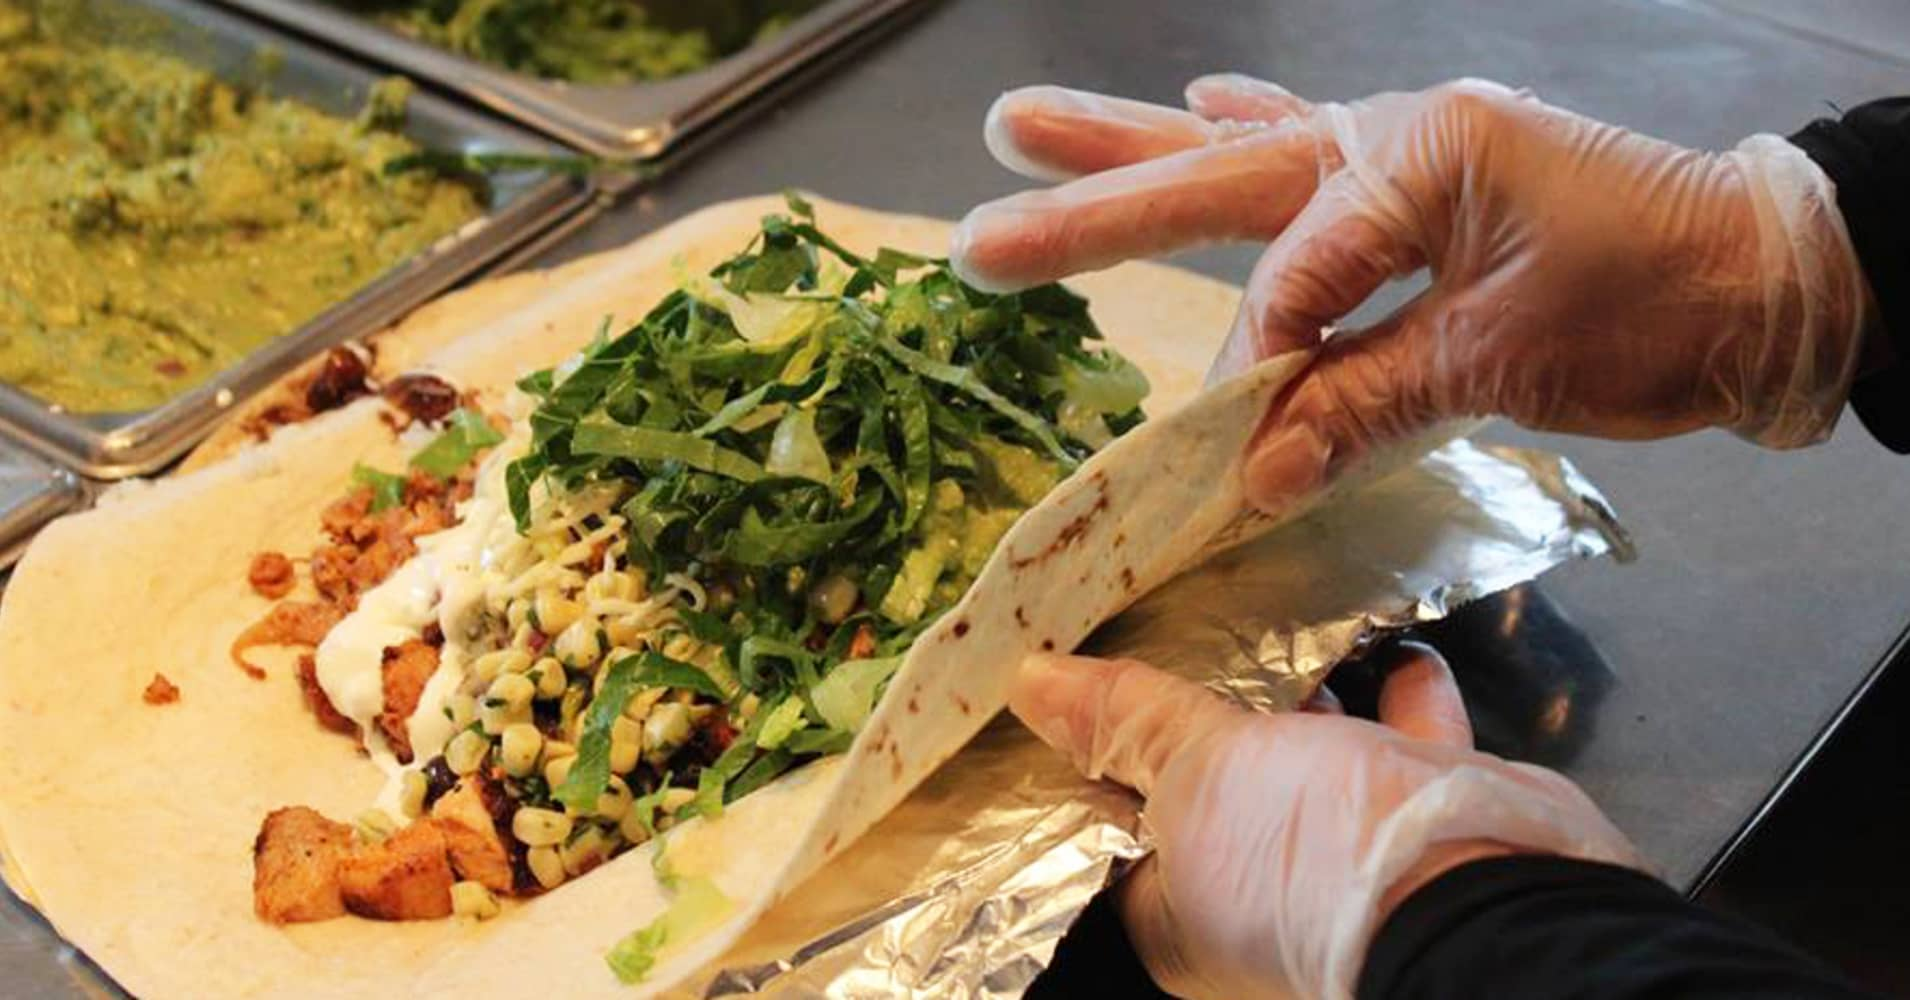 Chipotle Mexican Grill's promotions not having 'fully desired effects'